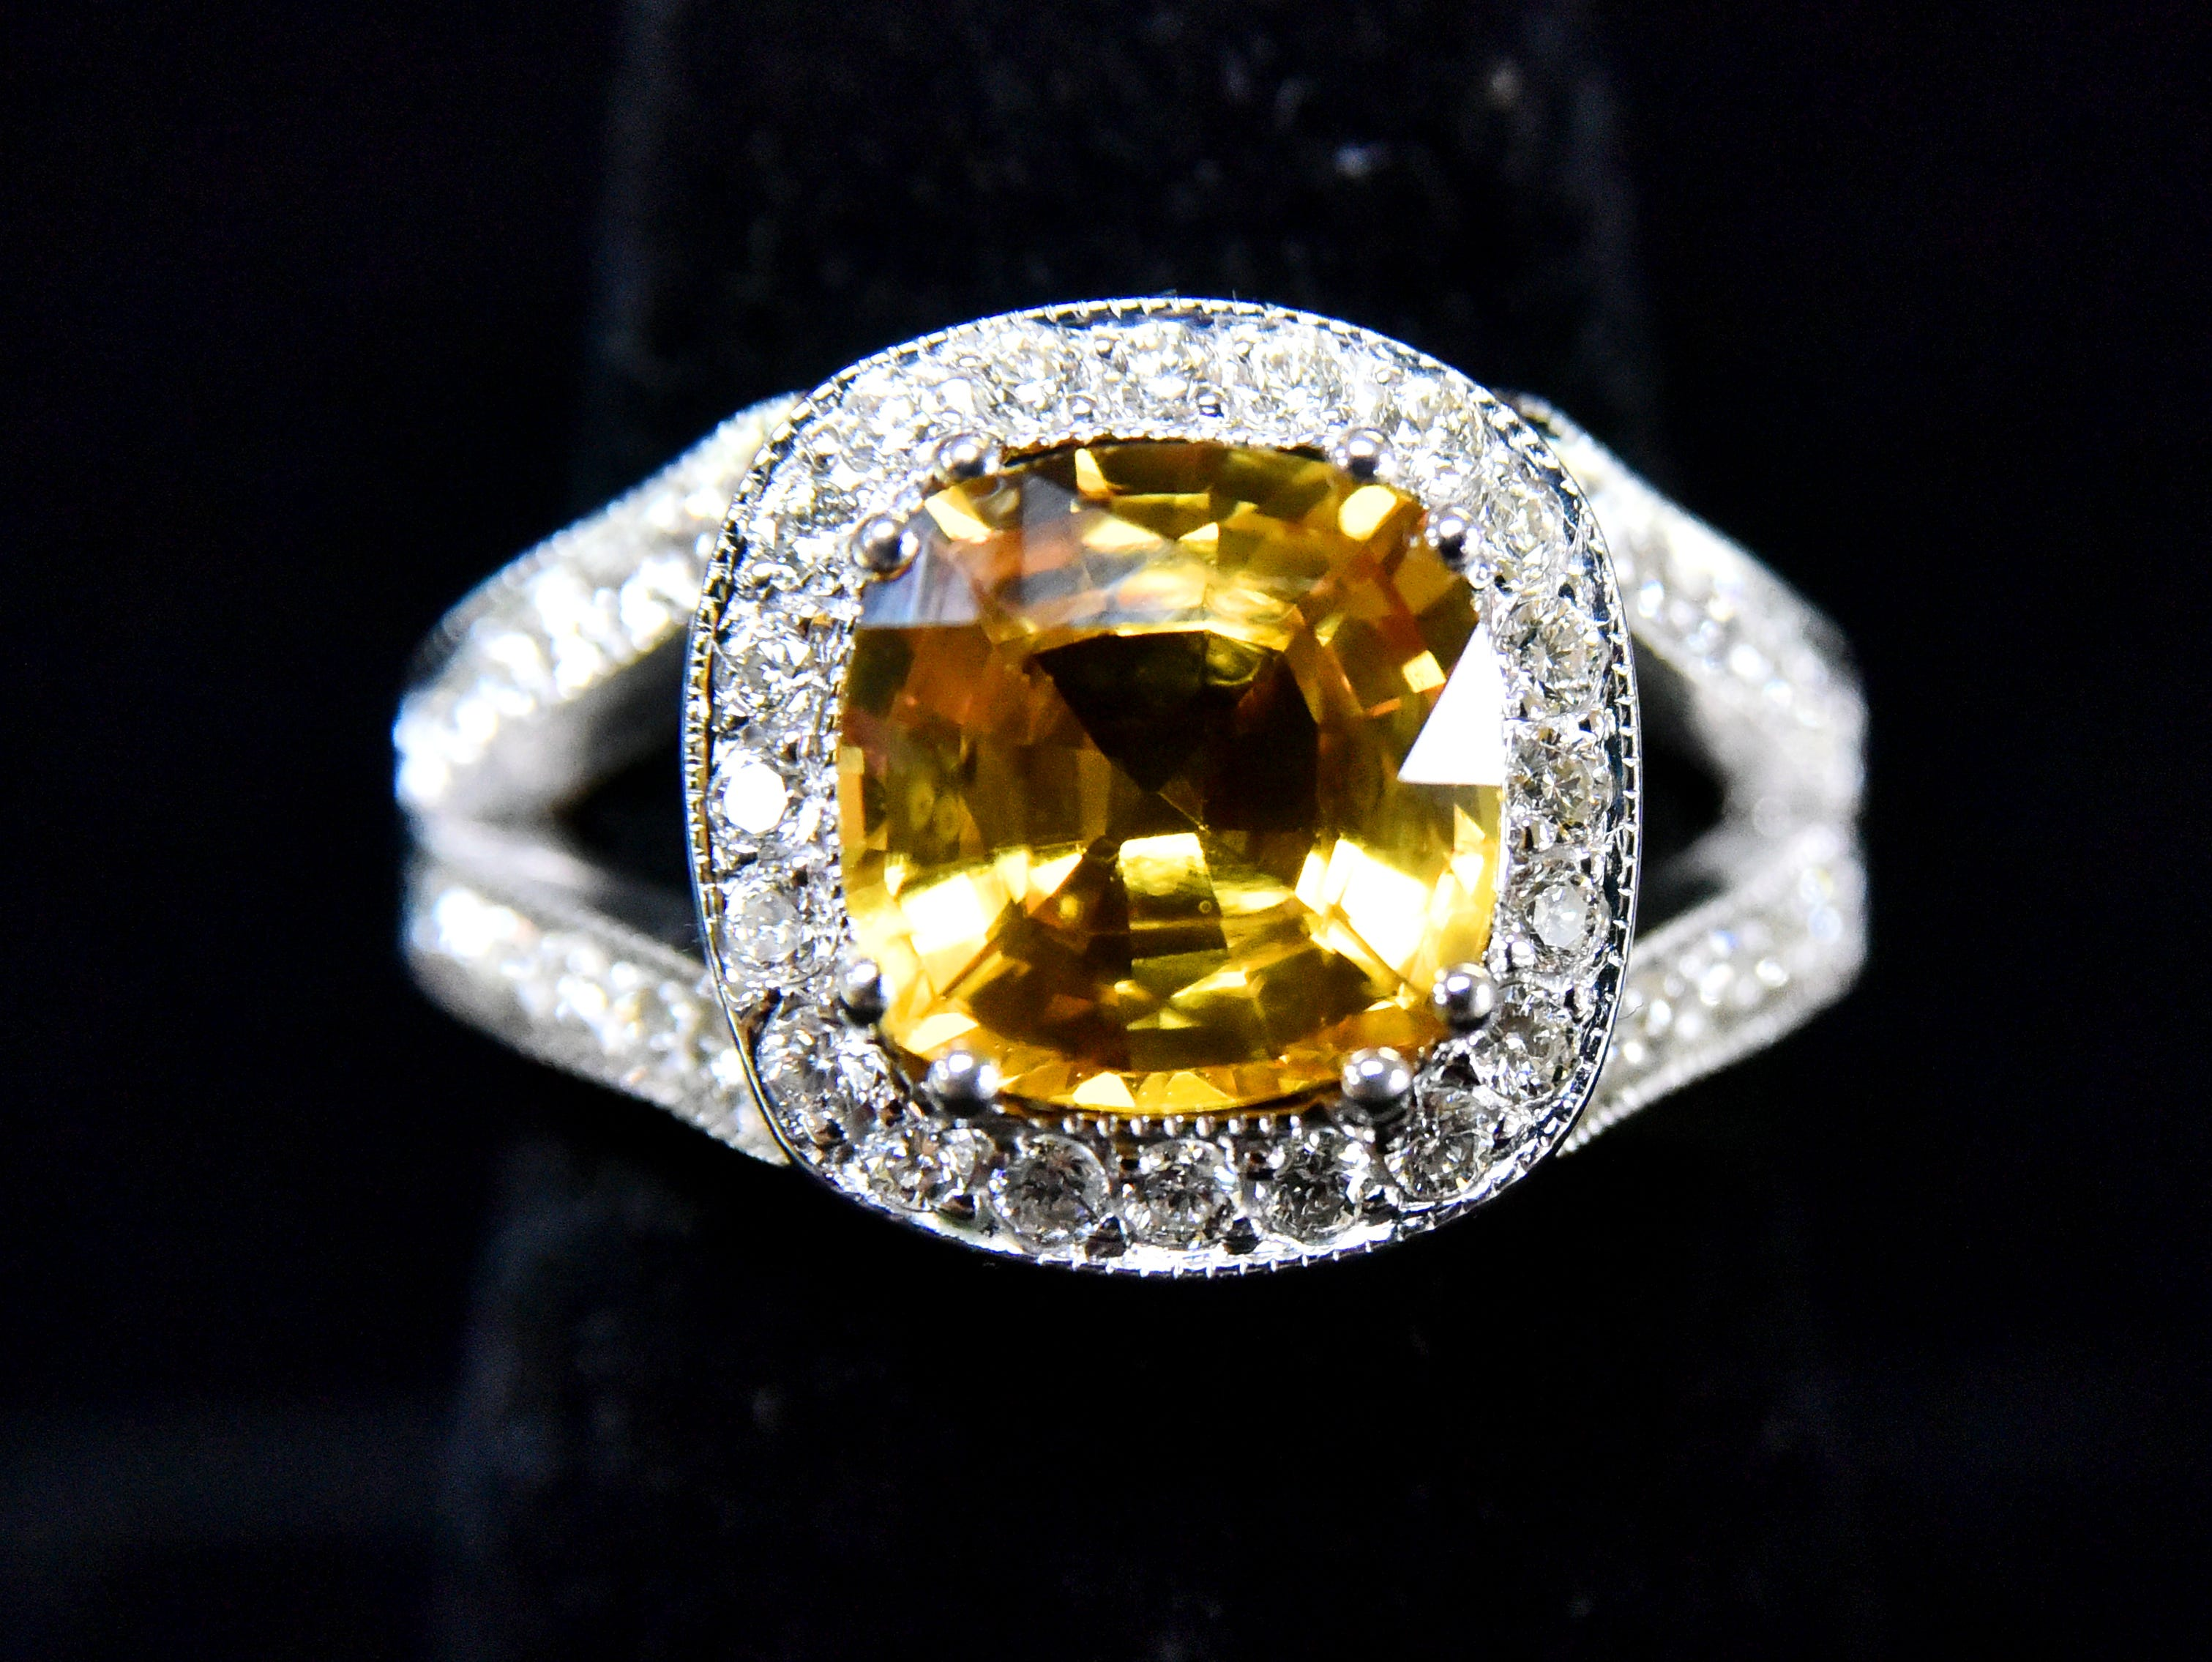 A 3.5k natural yellow sapphire ring with 1.25k in diamonds.